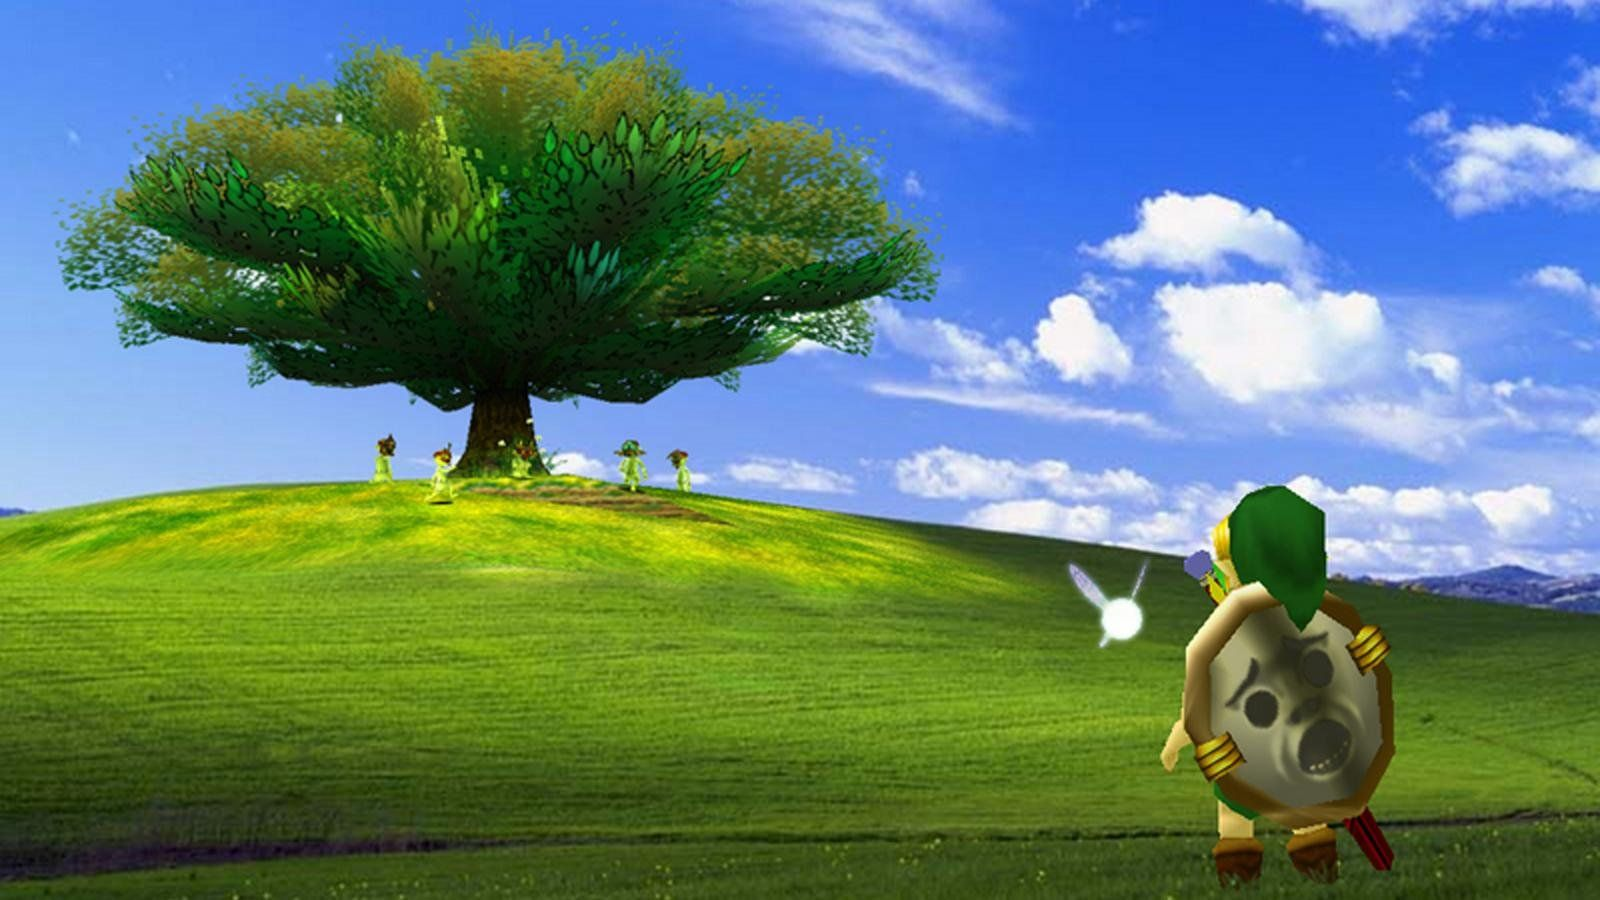 Wallpaper For Windows Xp Posted By John Thompson